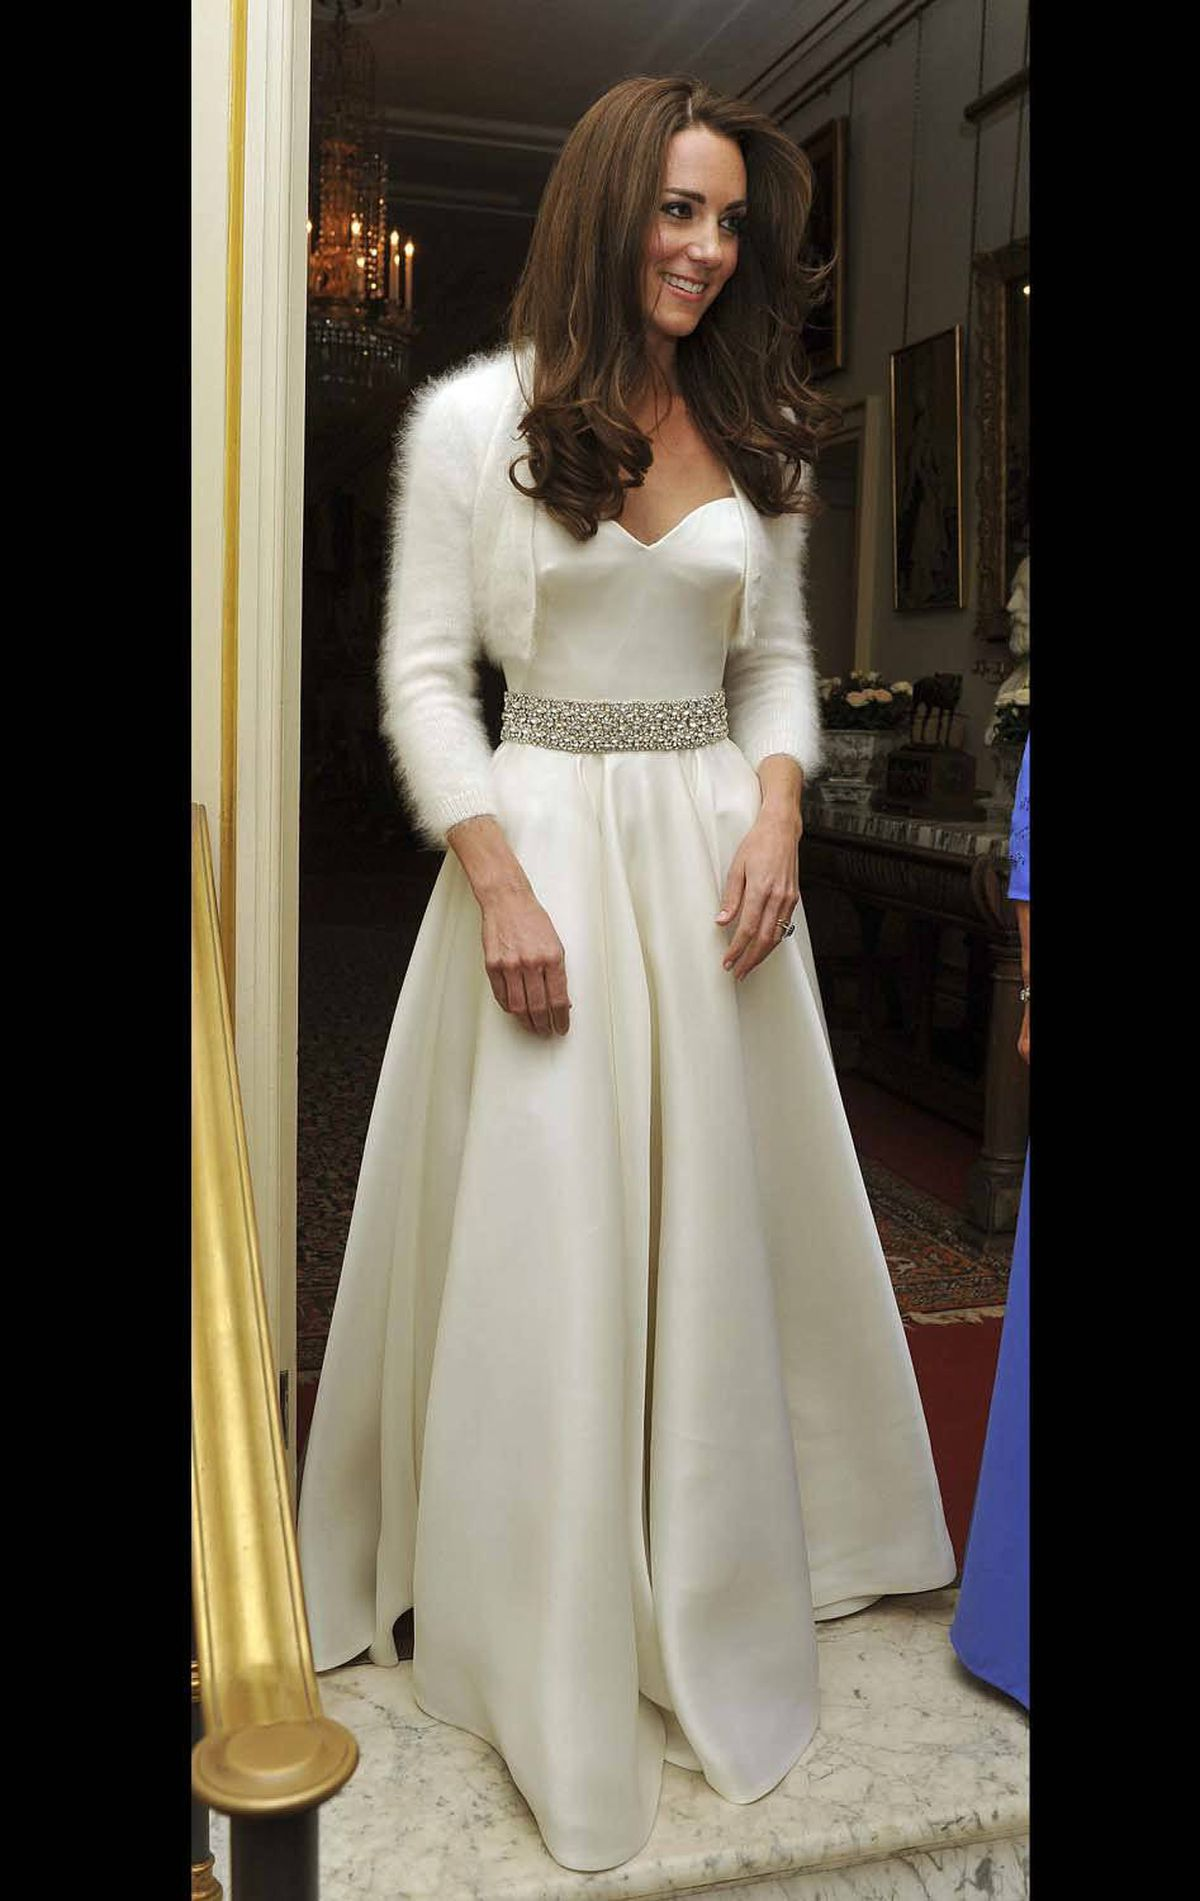 After the ceremony, she changes into another Alexander McQueen satin gown and a white angora bolero for evening celebrations at Buckingham Palace.